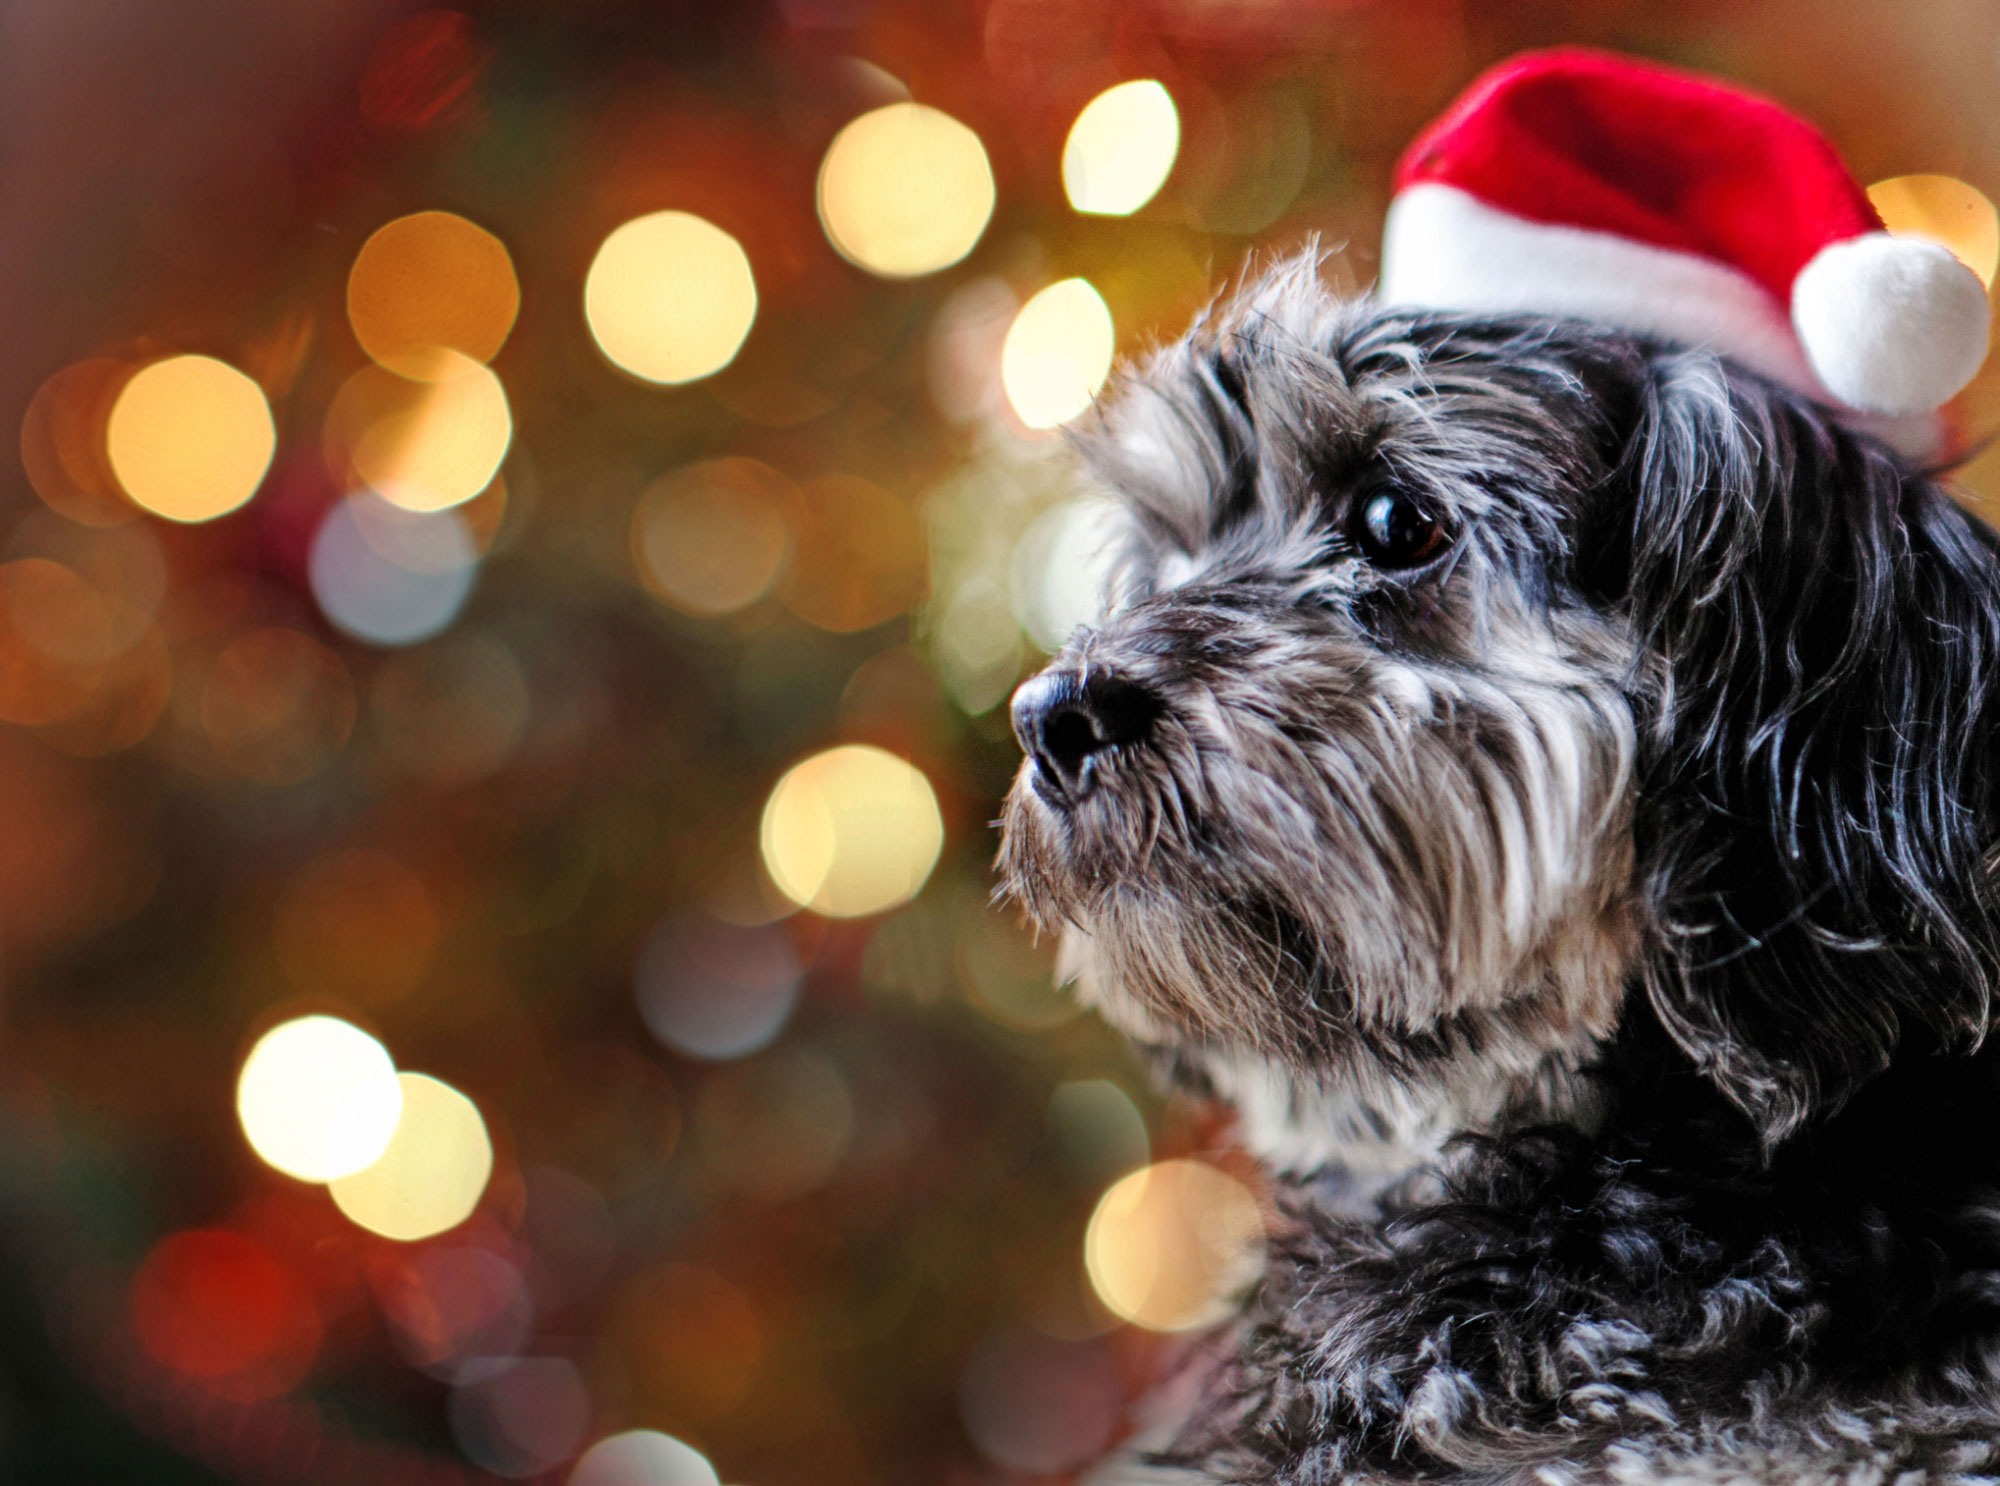 A dog dressed up for the Christmas season. GETTY IMAGES/Kirsty Nichol.